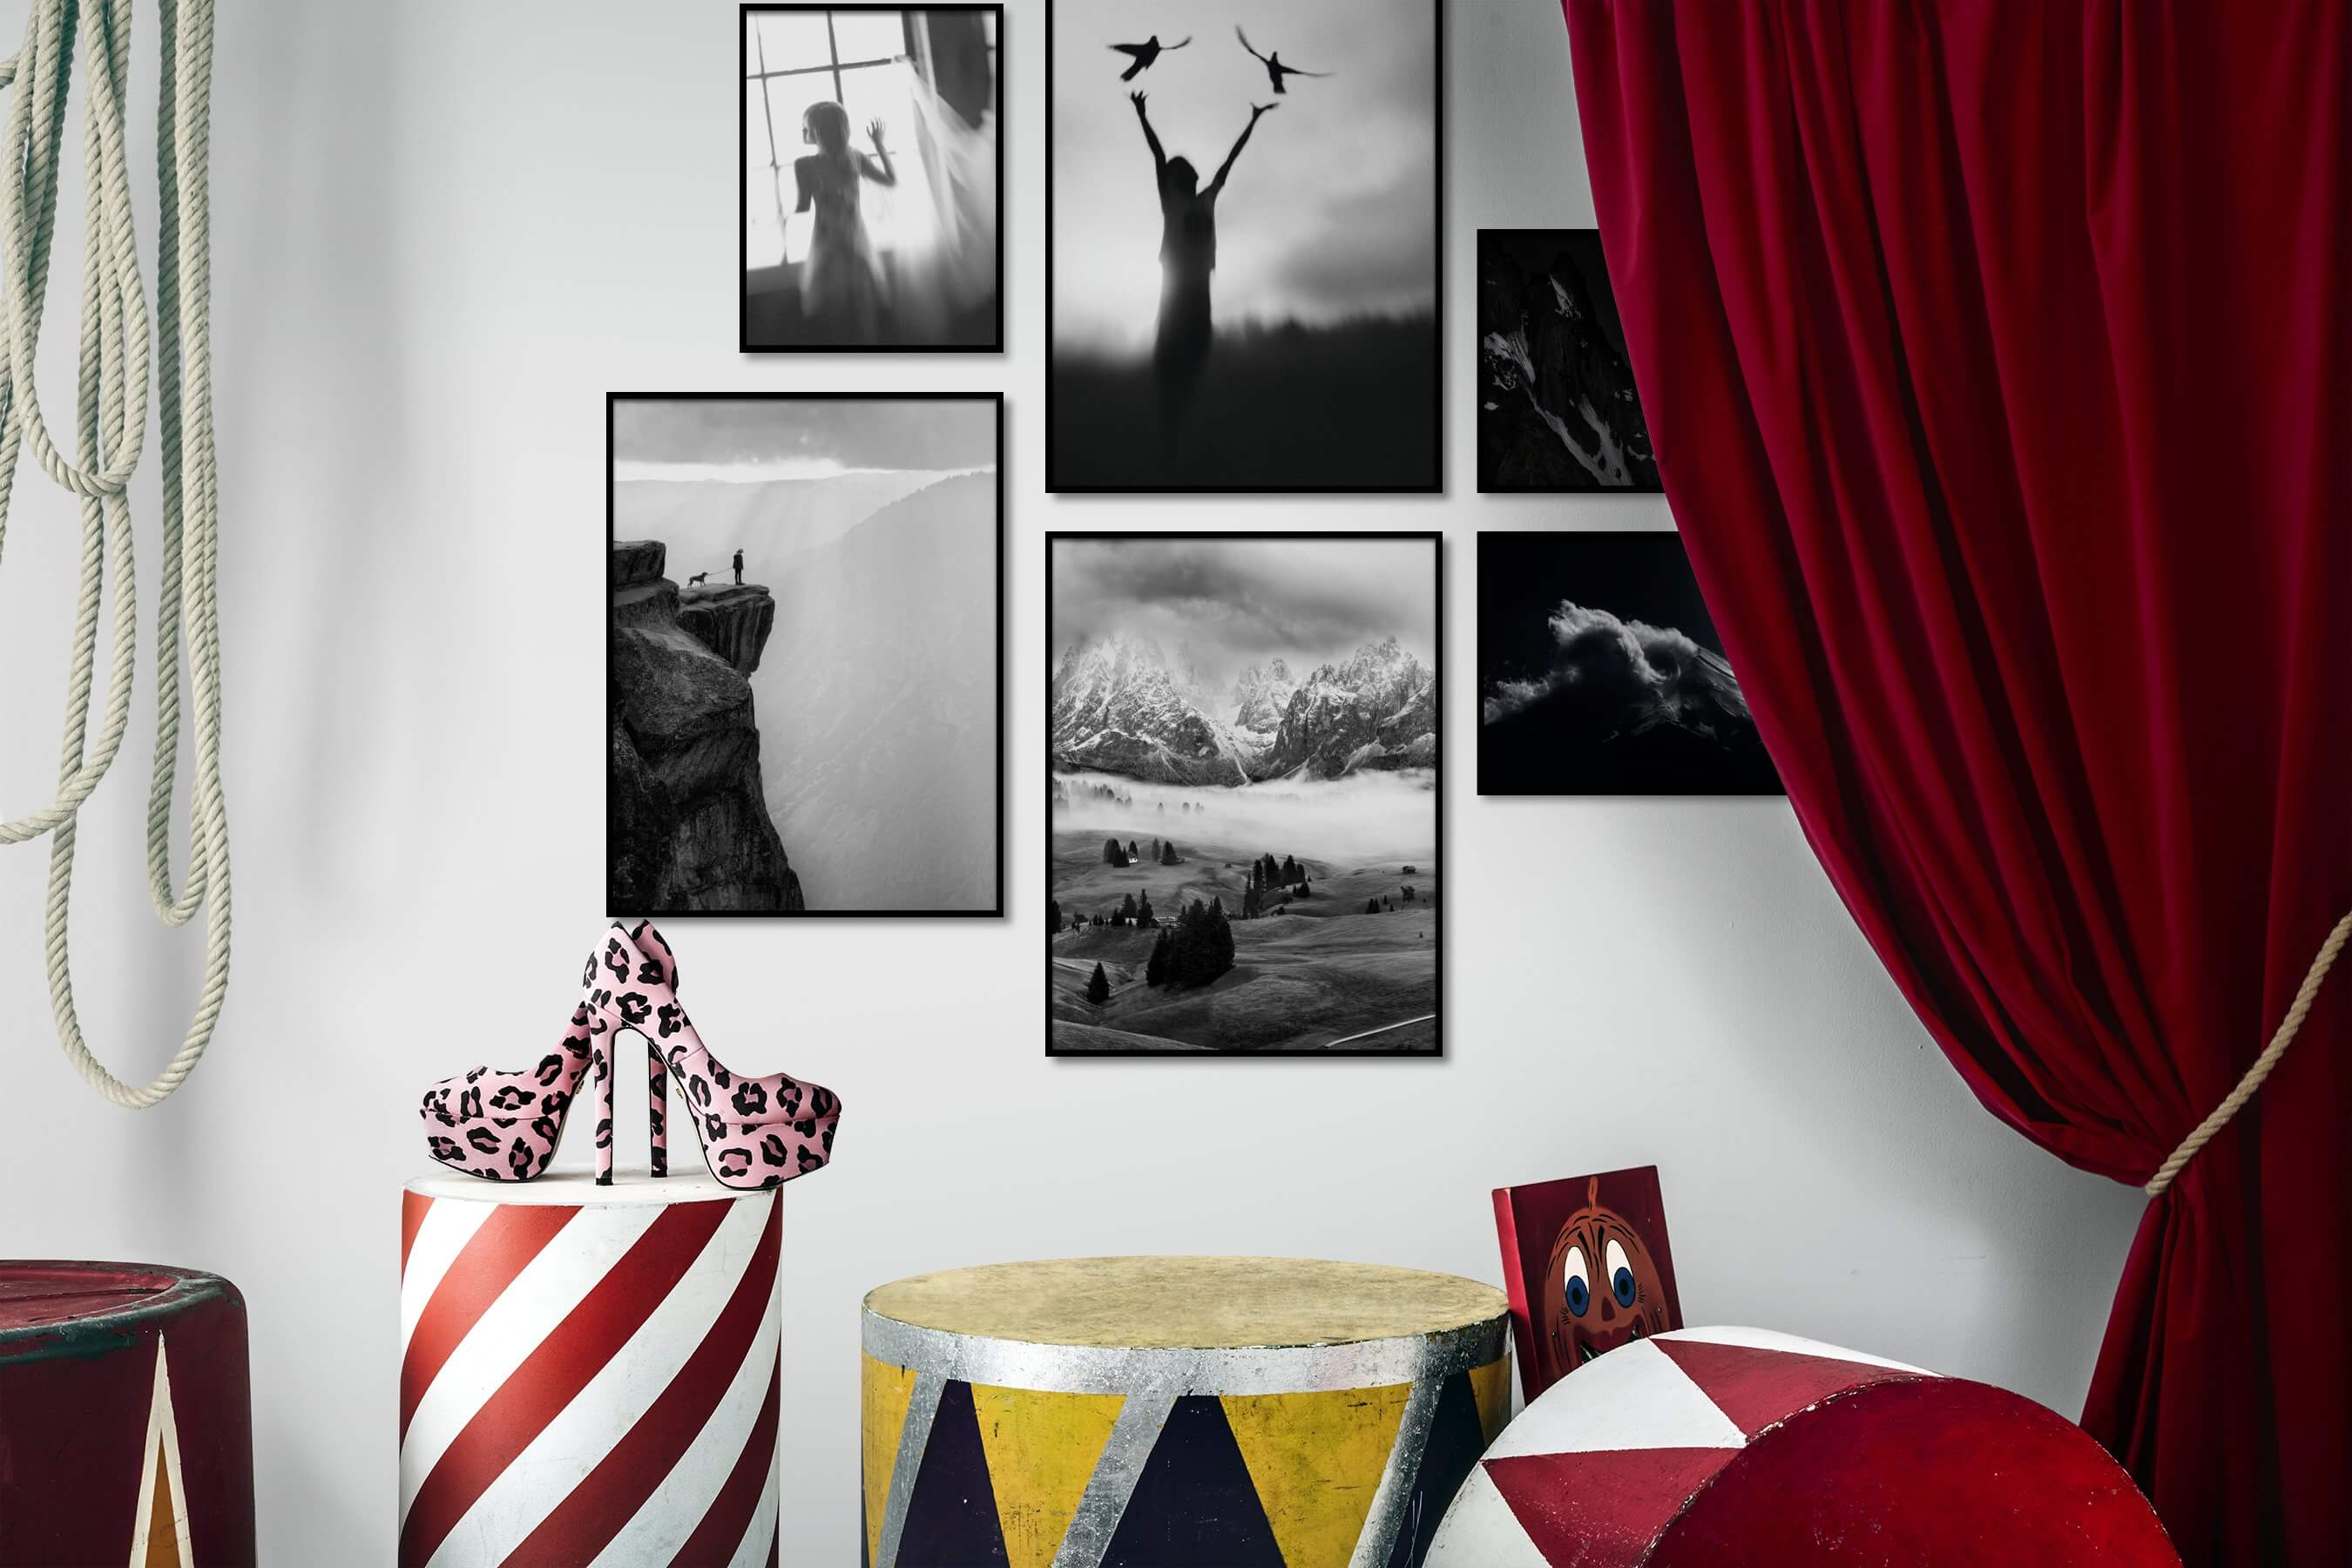 Gallery wall idea with six framed pictures arranged on a wall depicting Fashion & Beauty, Black & White, Animals, Country Life, Nature, Mindfulness, and Dark Tones